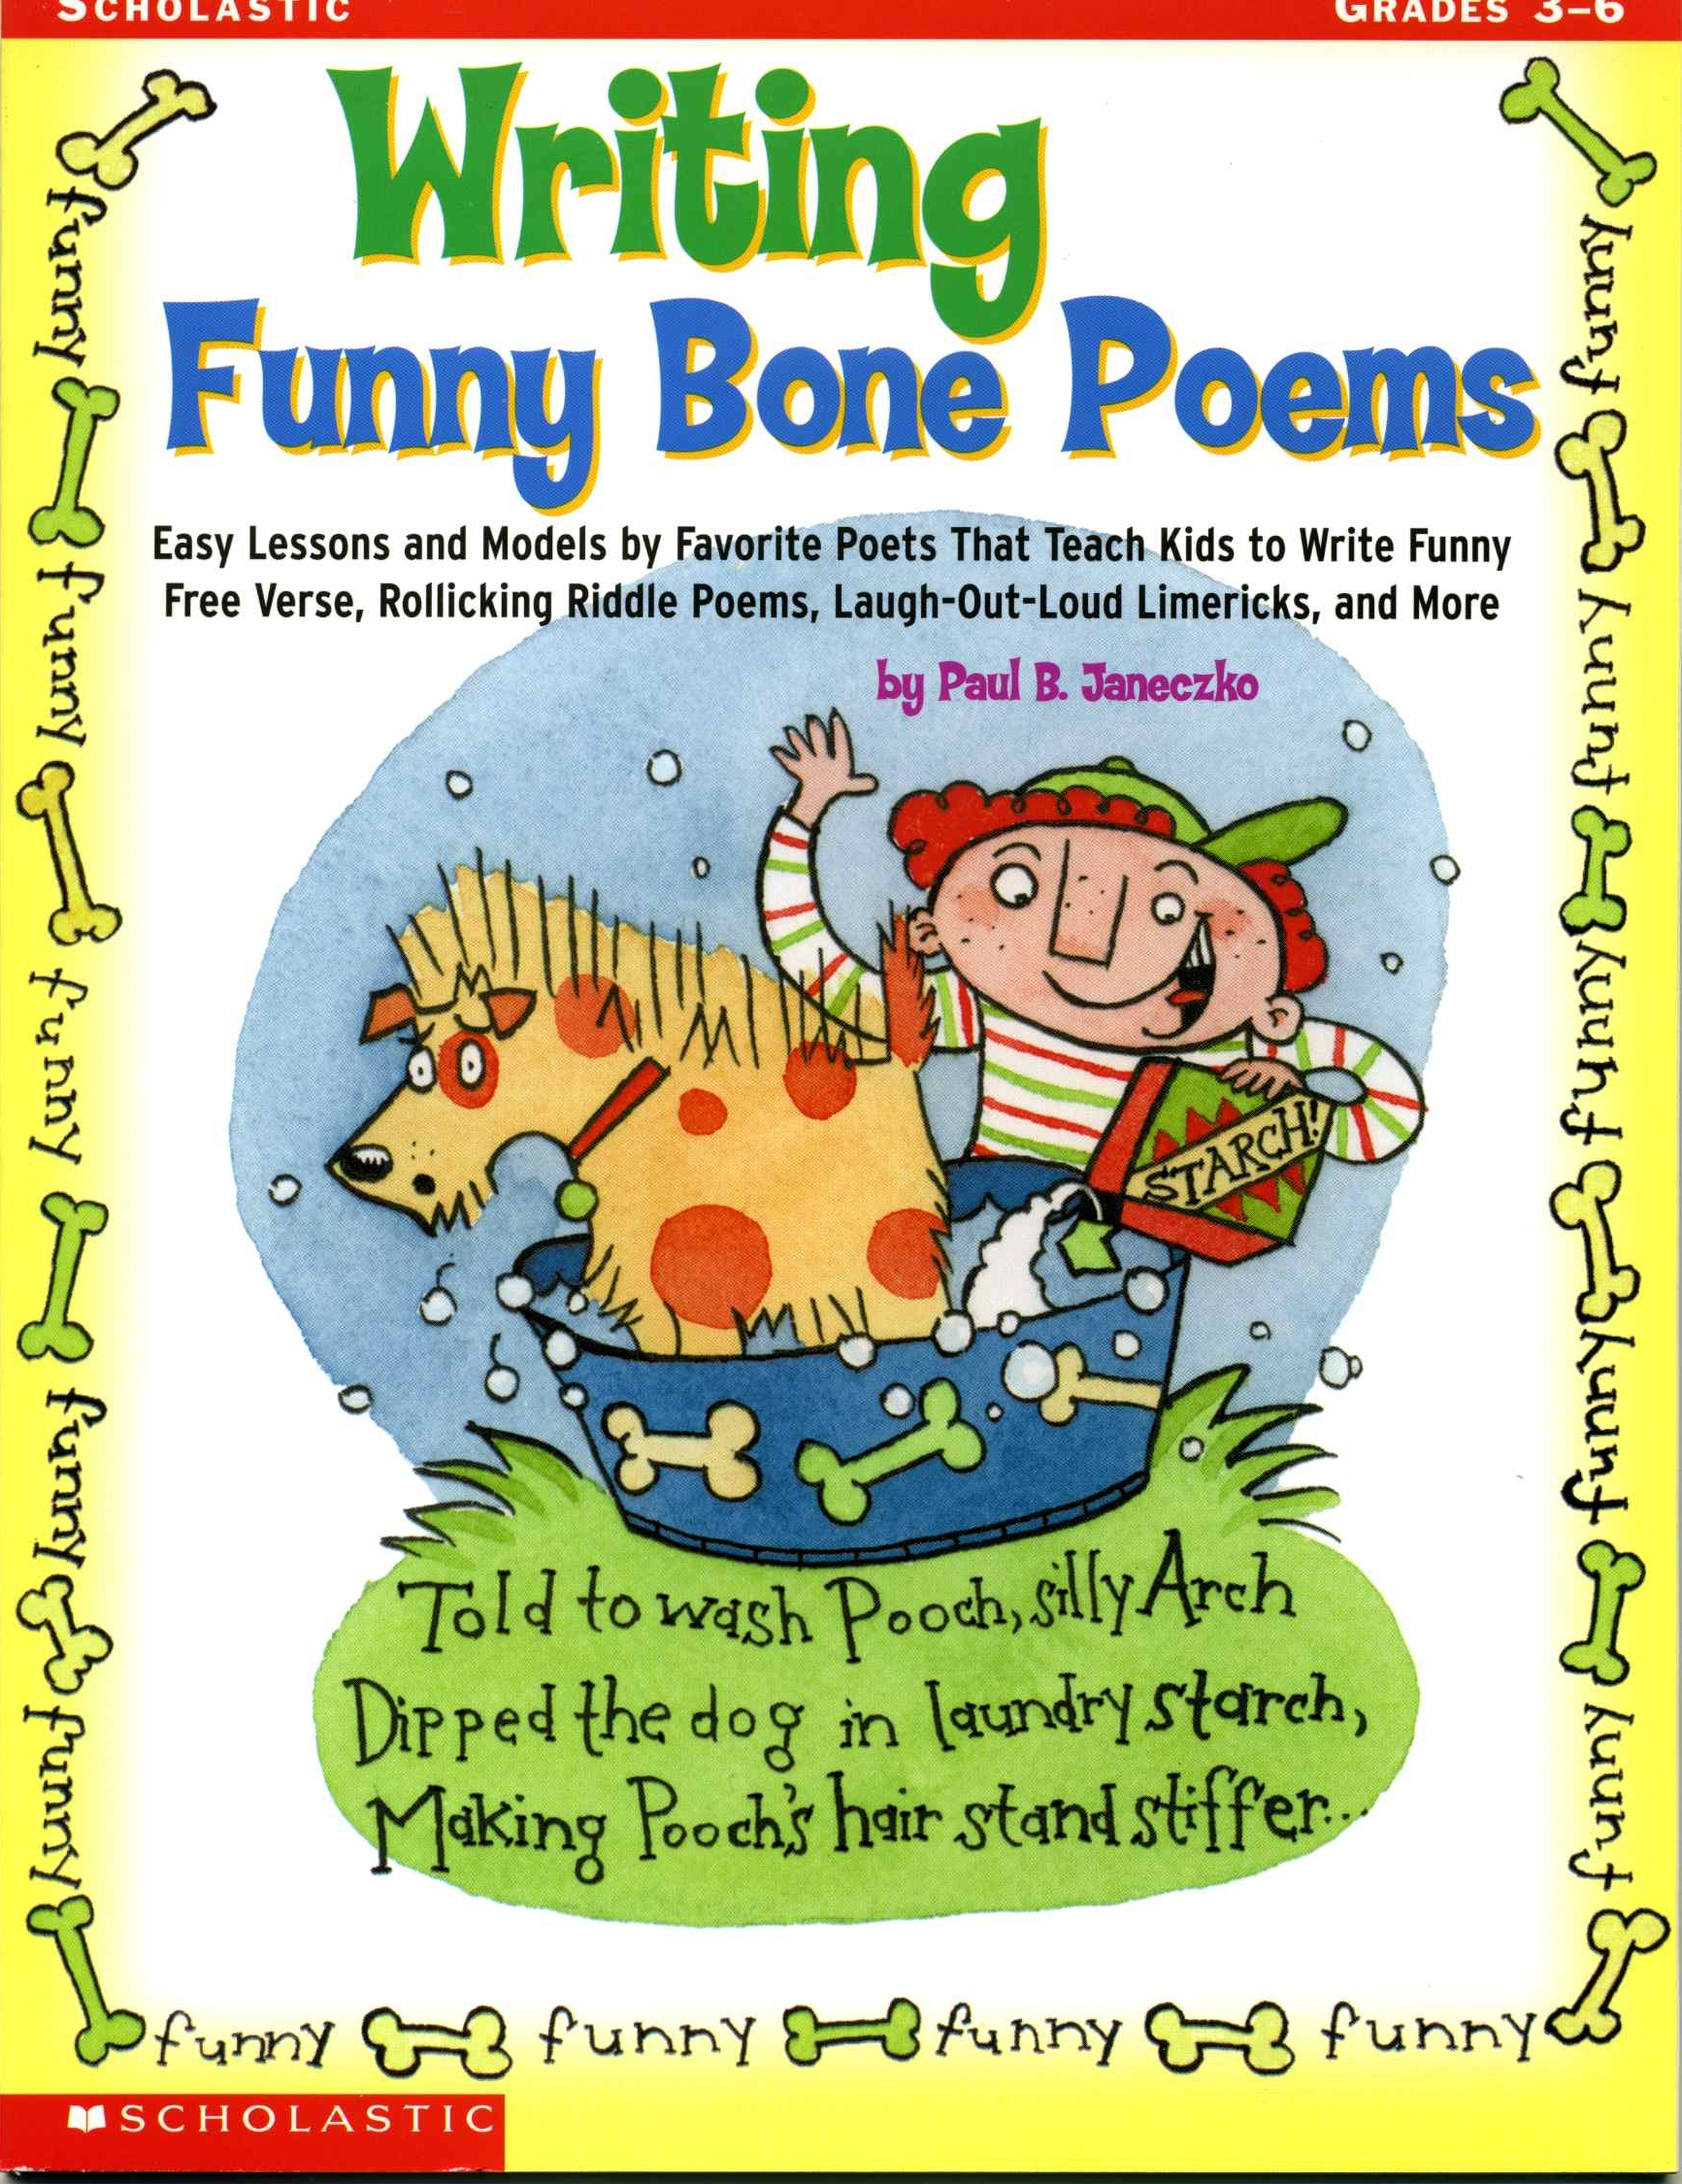 Writing Funny Bone Poems